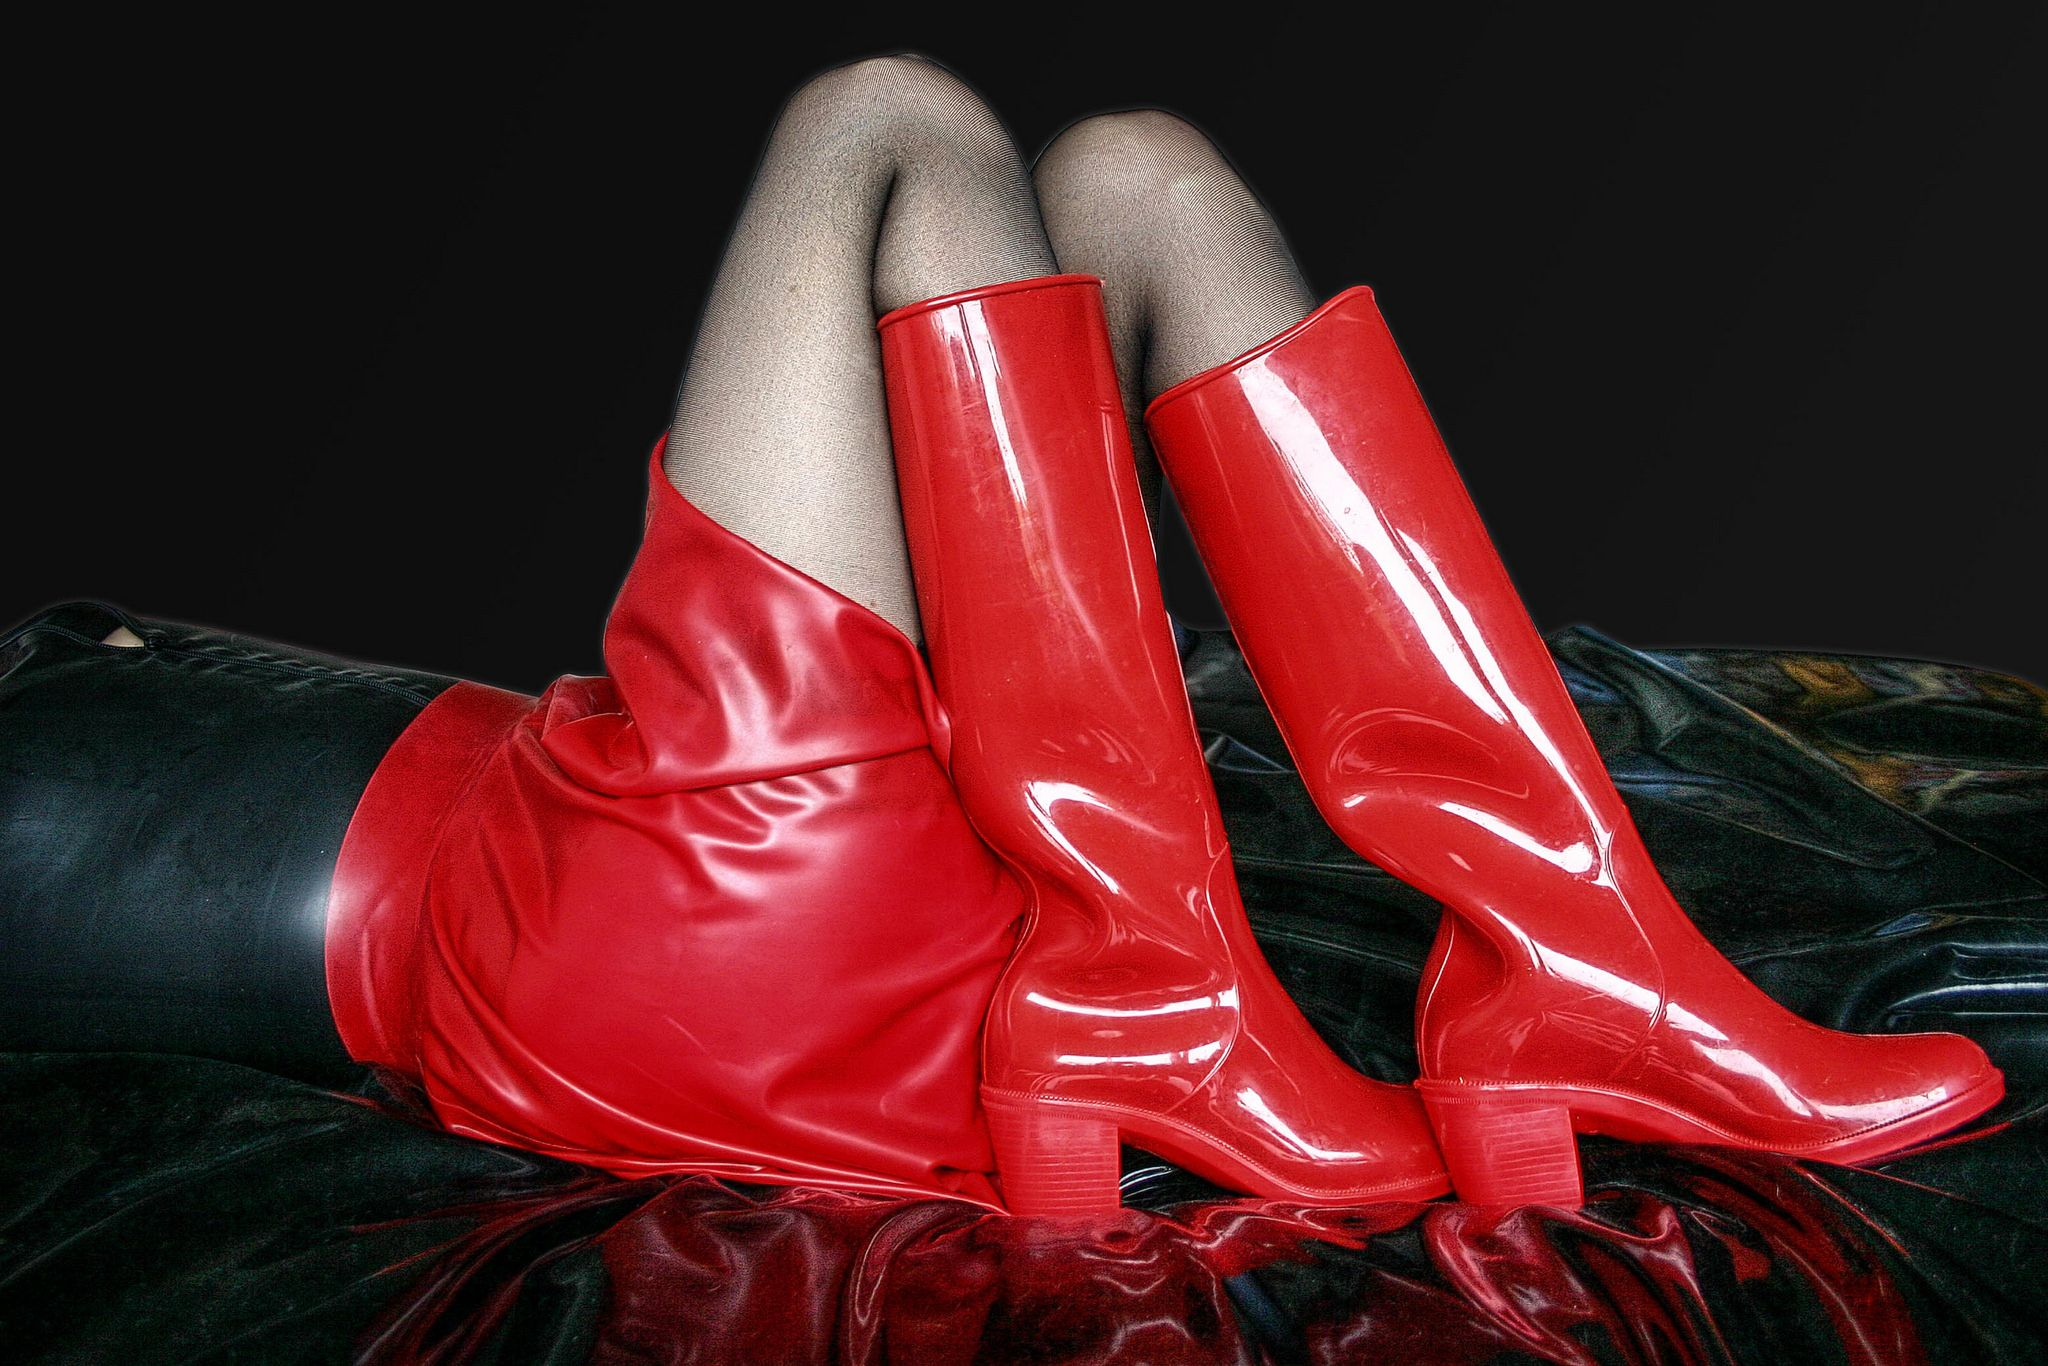 b1b193cd7 red boots in 2019 | Boots | Boots, Red boots, Wellies rain boots